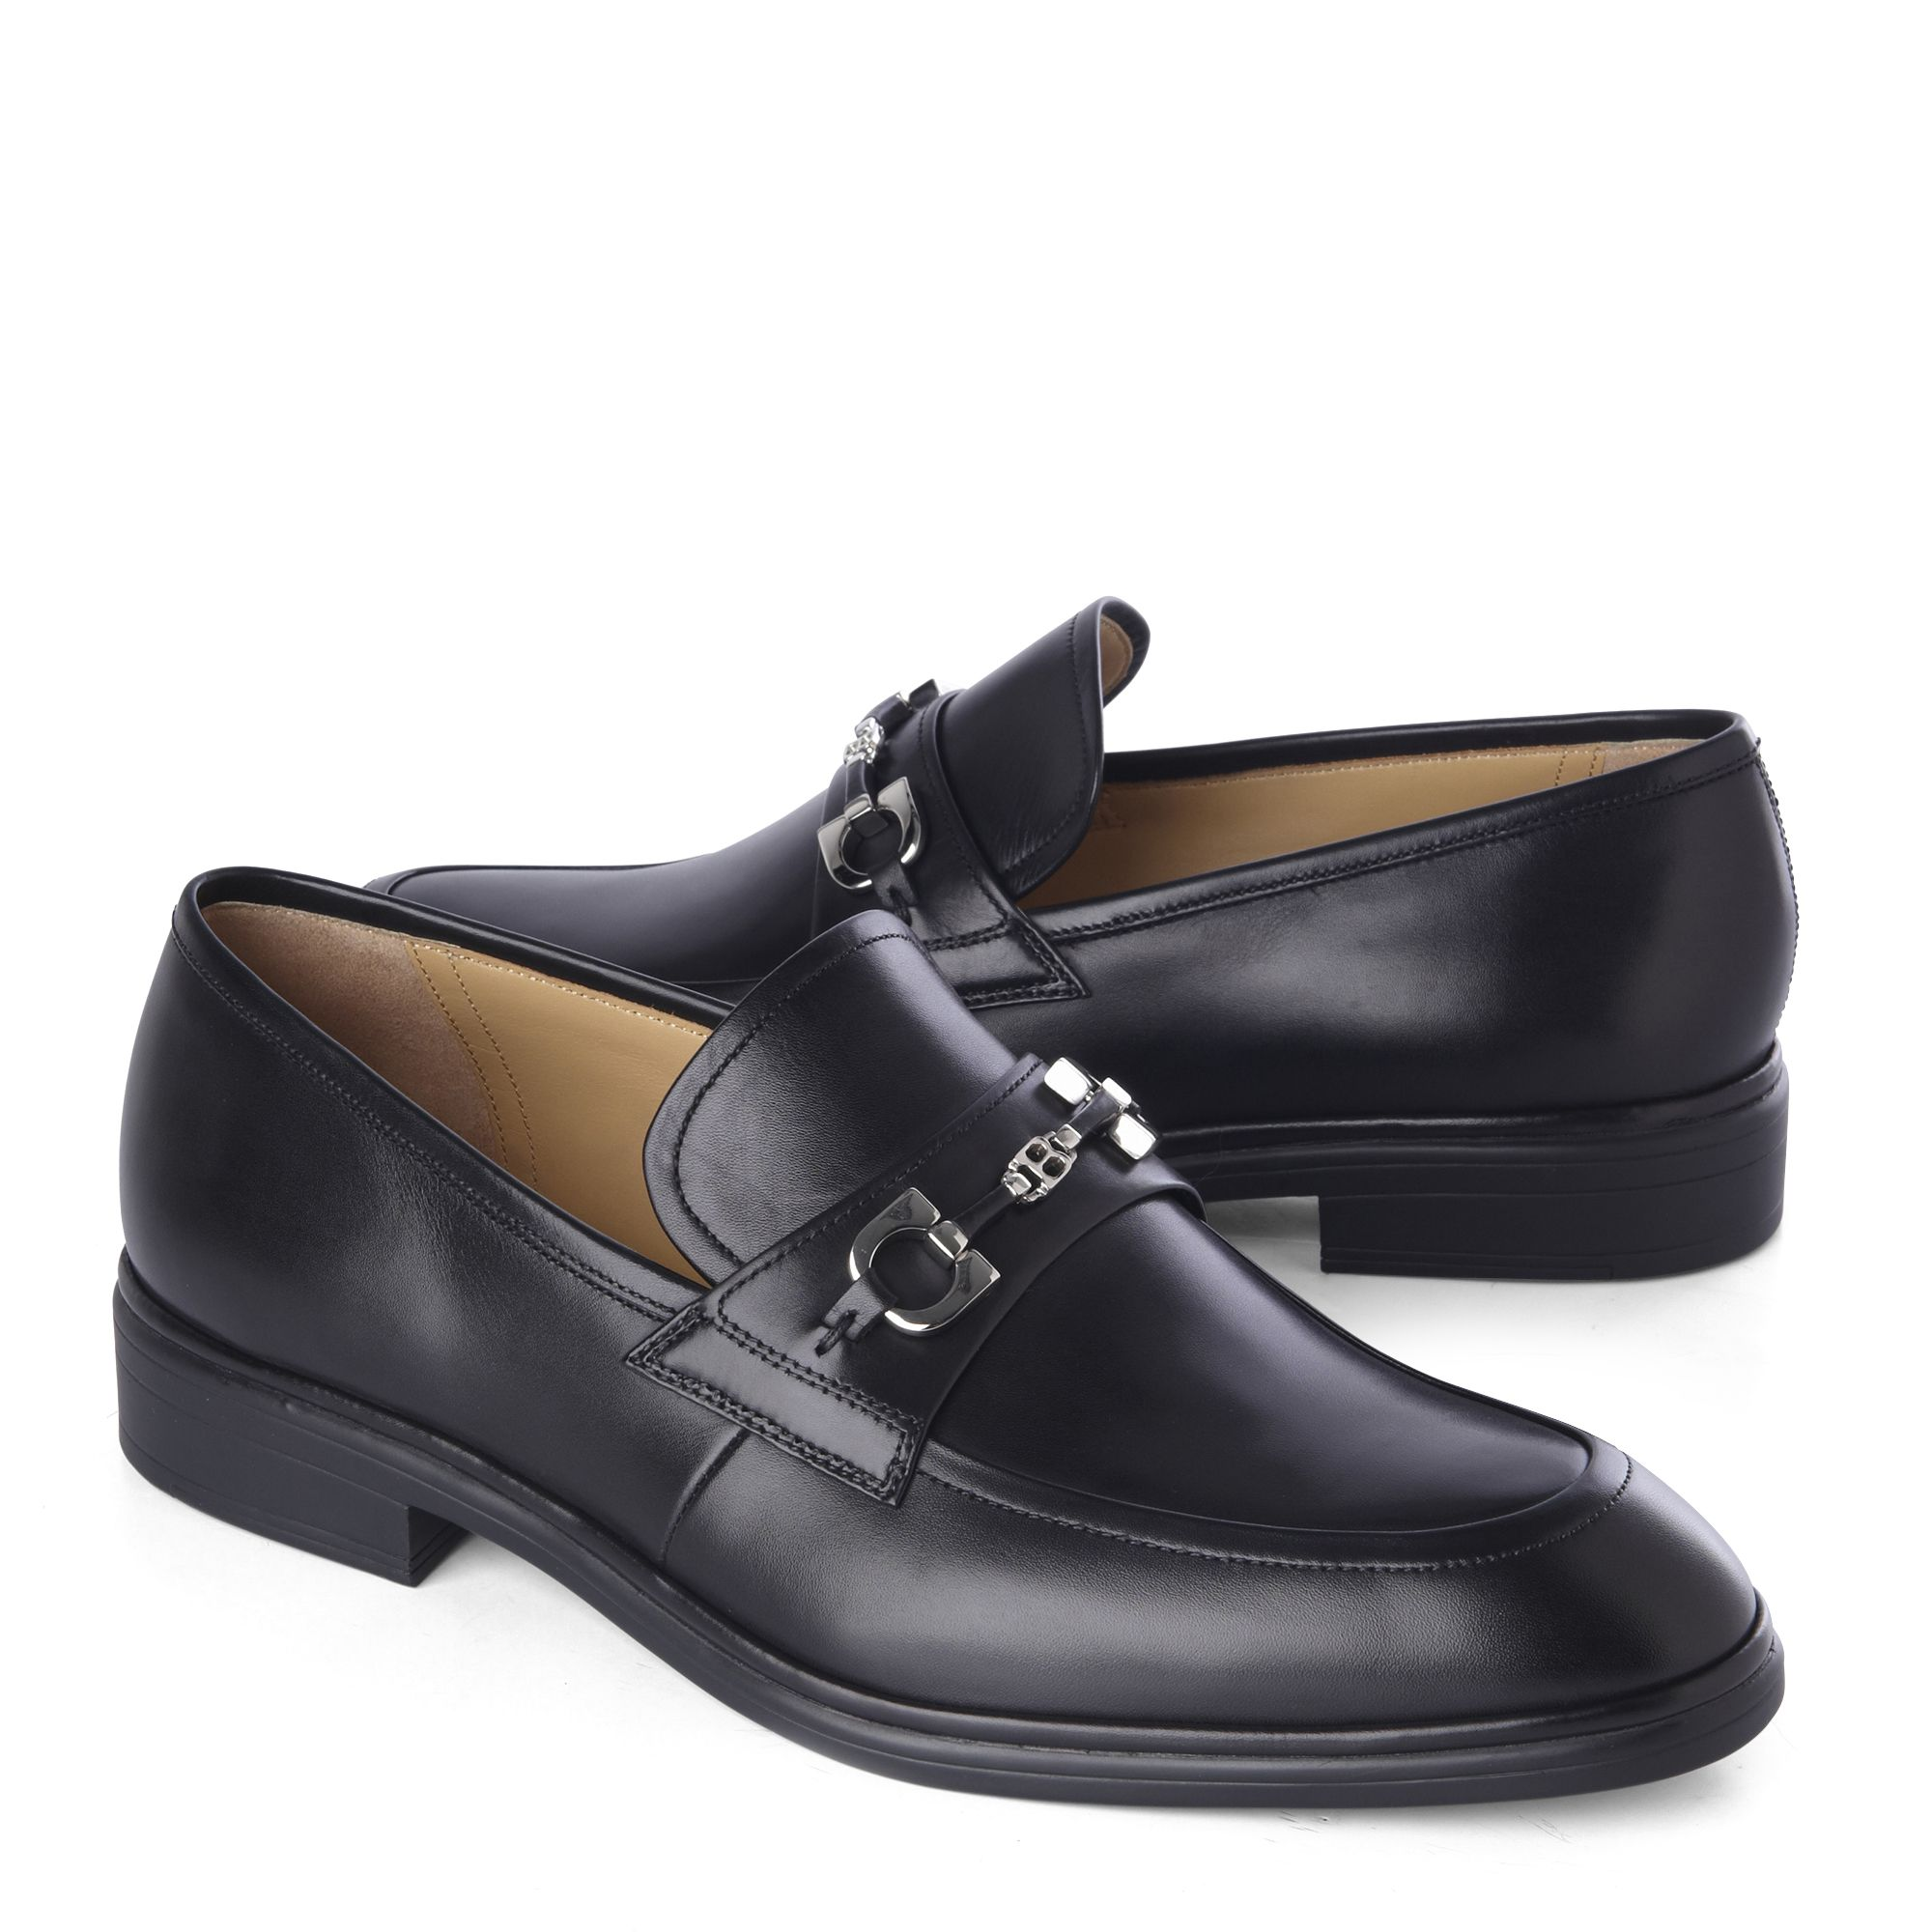 1f47e2183 Bally Leather Loafers in Black for Men - Lyst